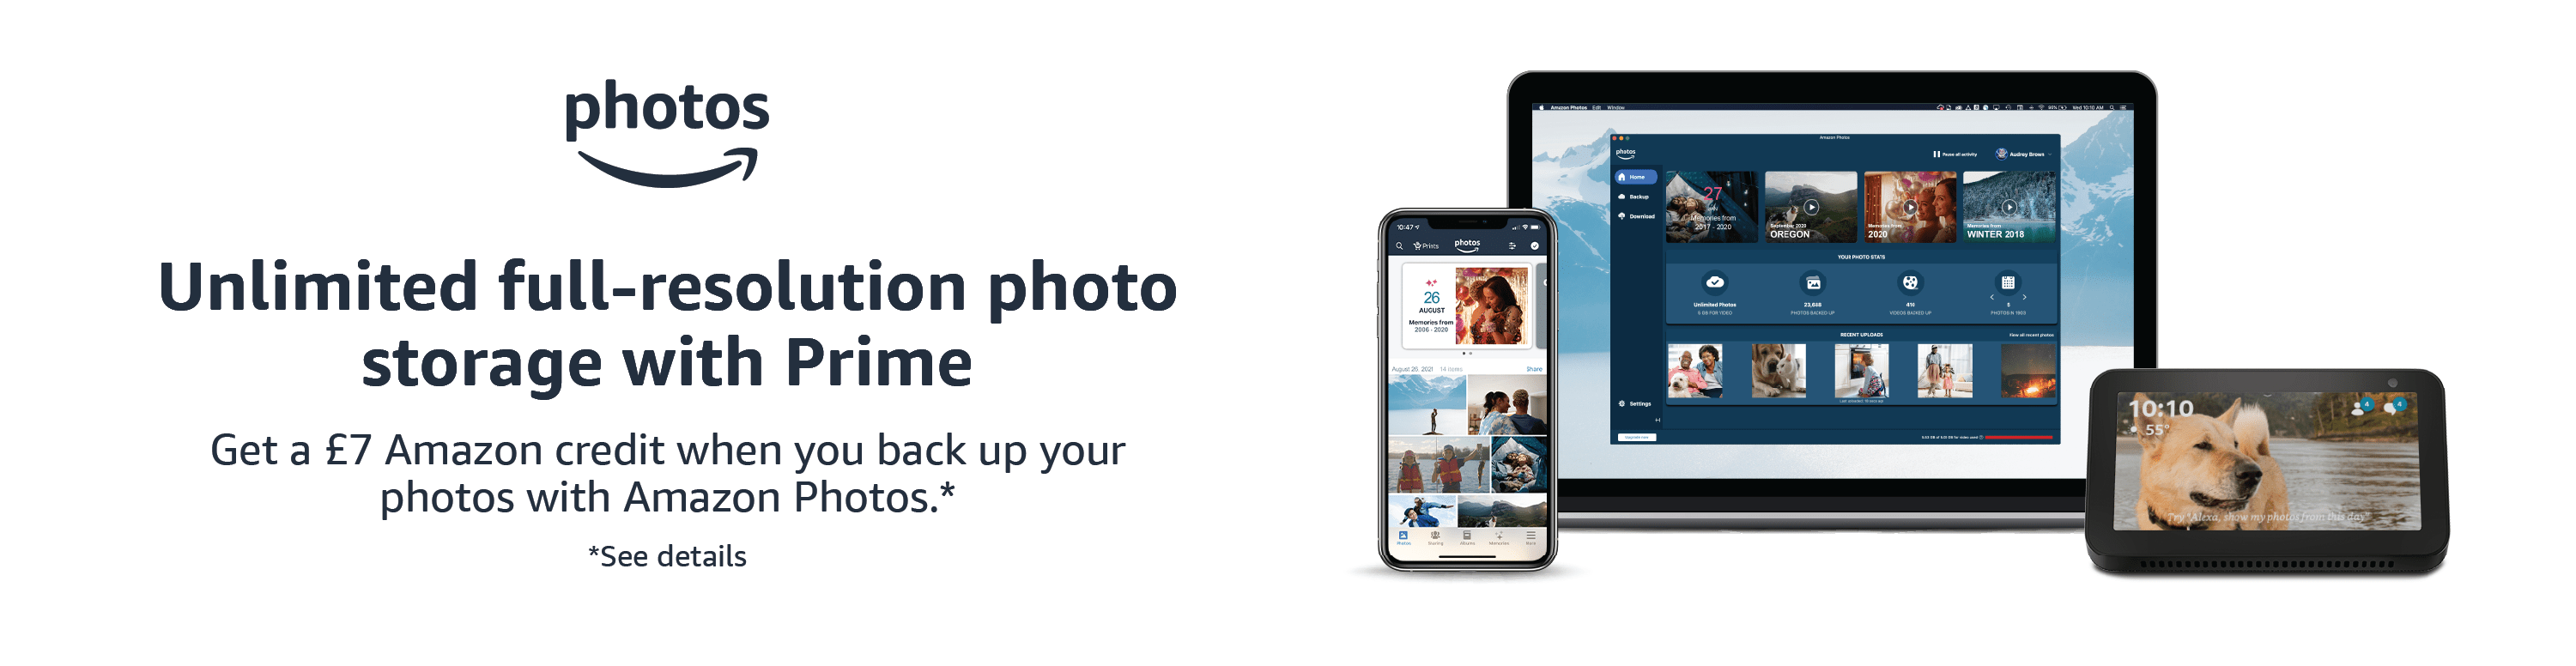 Get a £7 Amazon credit when you back up your photos with Amazon Photos. Details below.